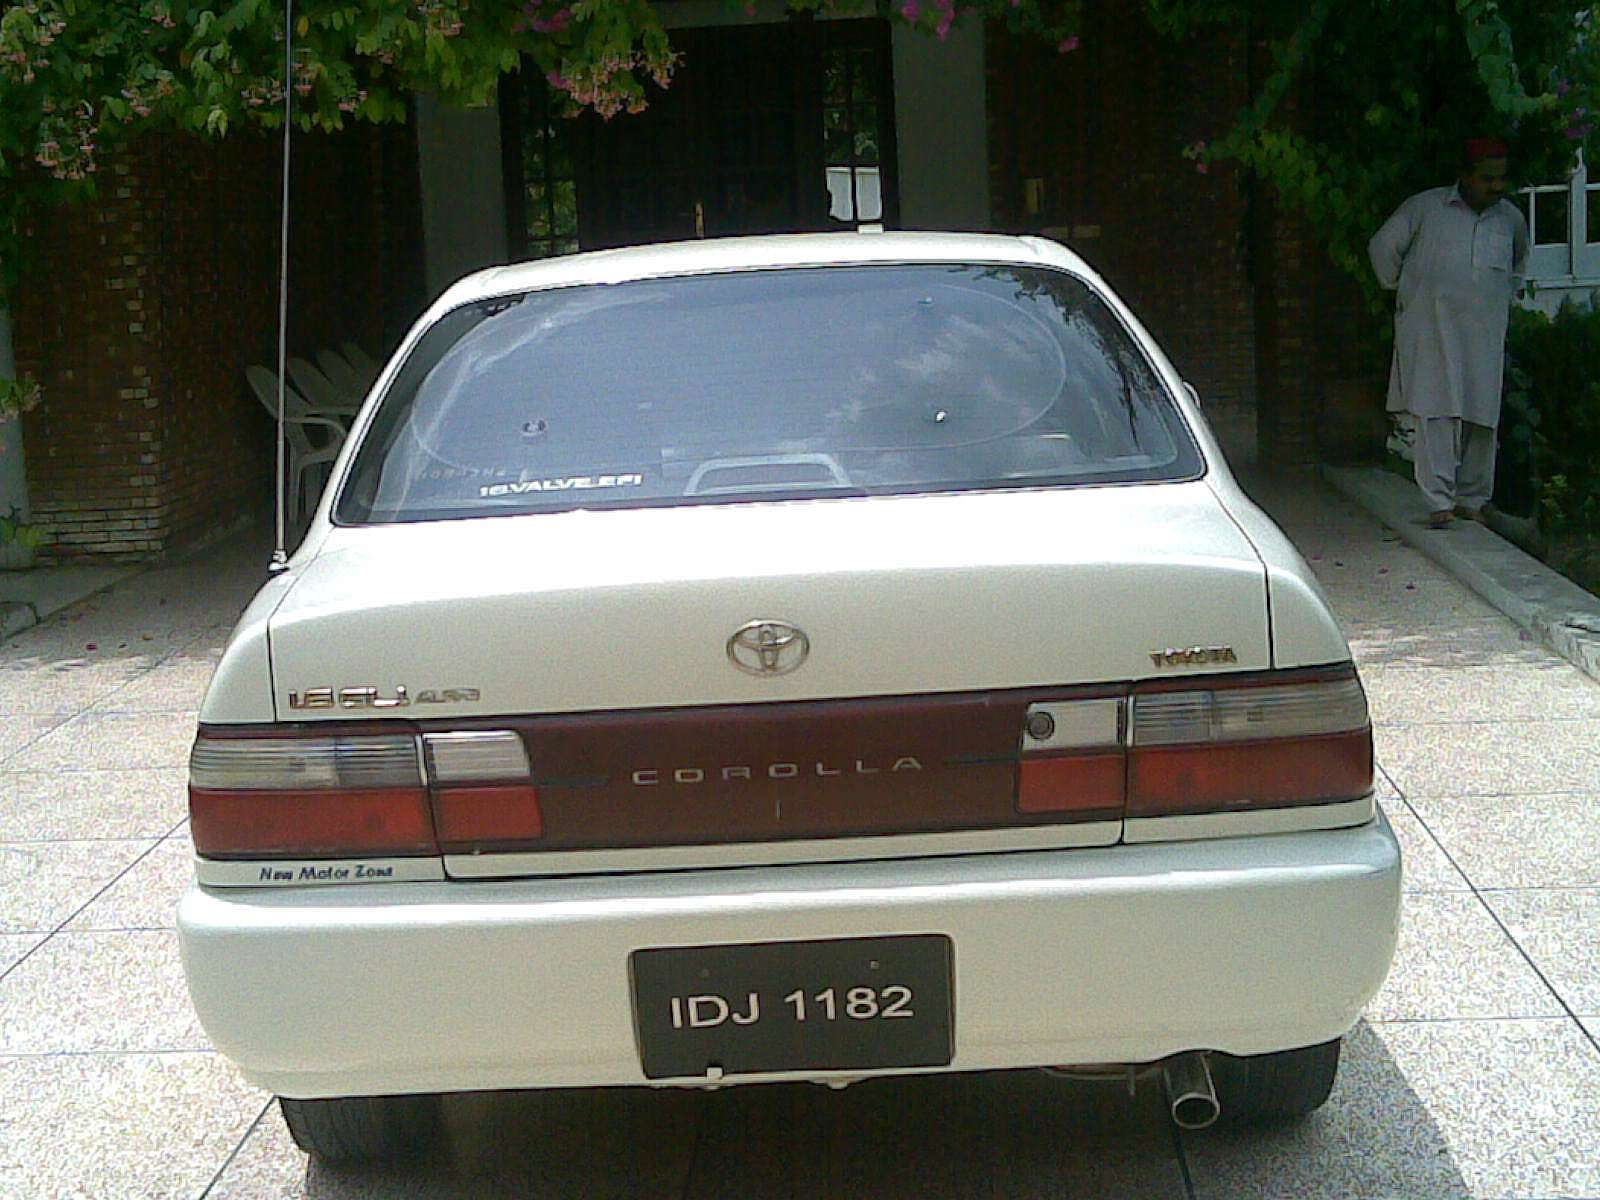 used 1998 toyota corolla for sale lahore pakistan free classifieds muamat. Black Bedroom Furniture Sets. Home Design Ideas